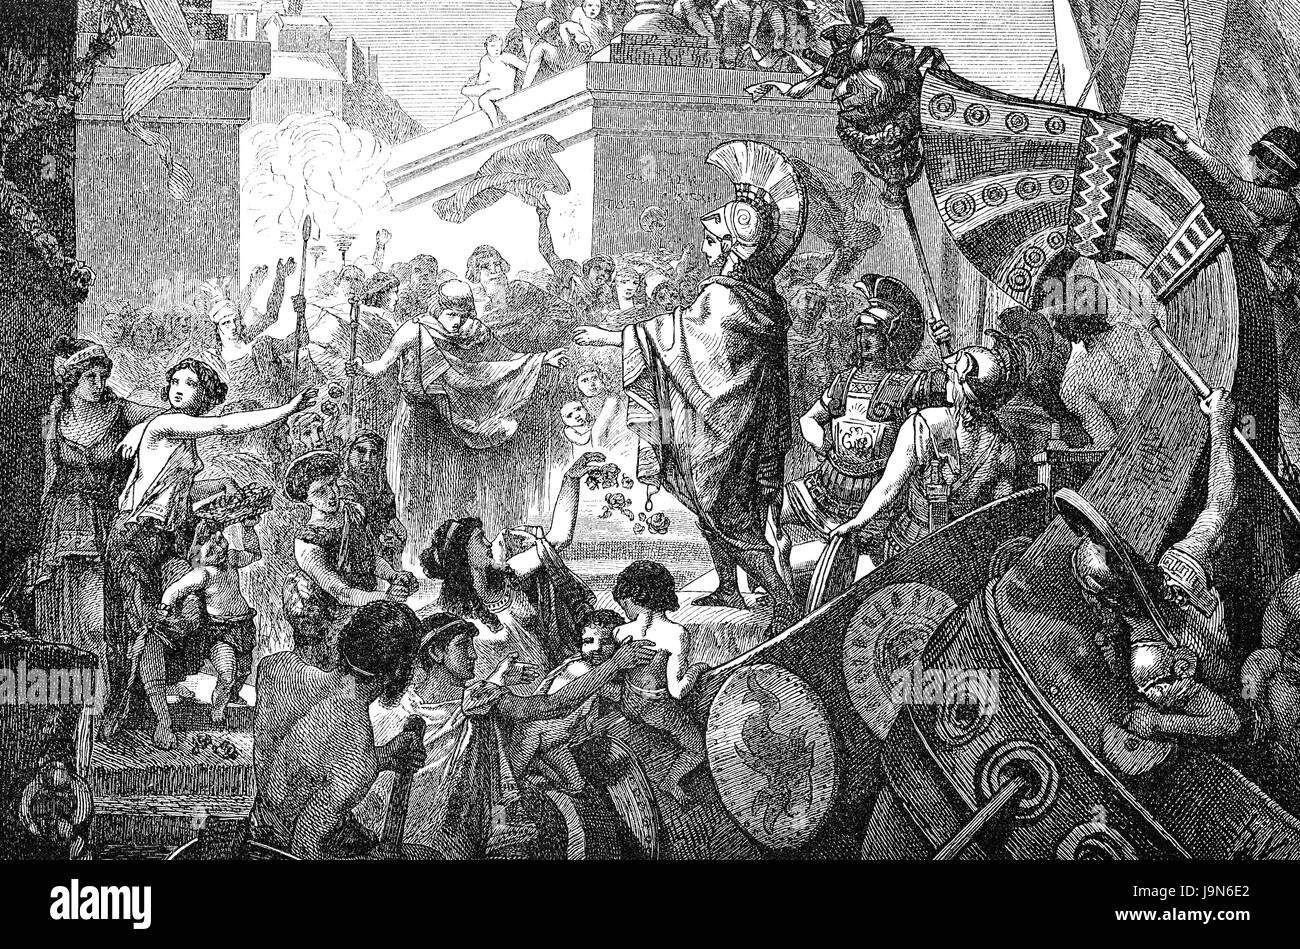 The return of Alcibiades, a prominent Athenian statesman, orator, and general in ancient Greece, 5th Century BC - Stock Image